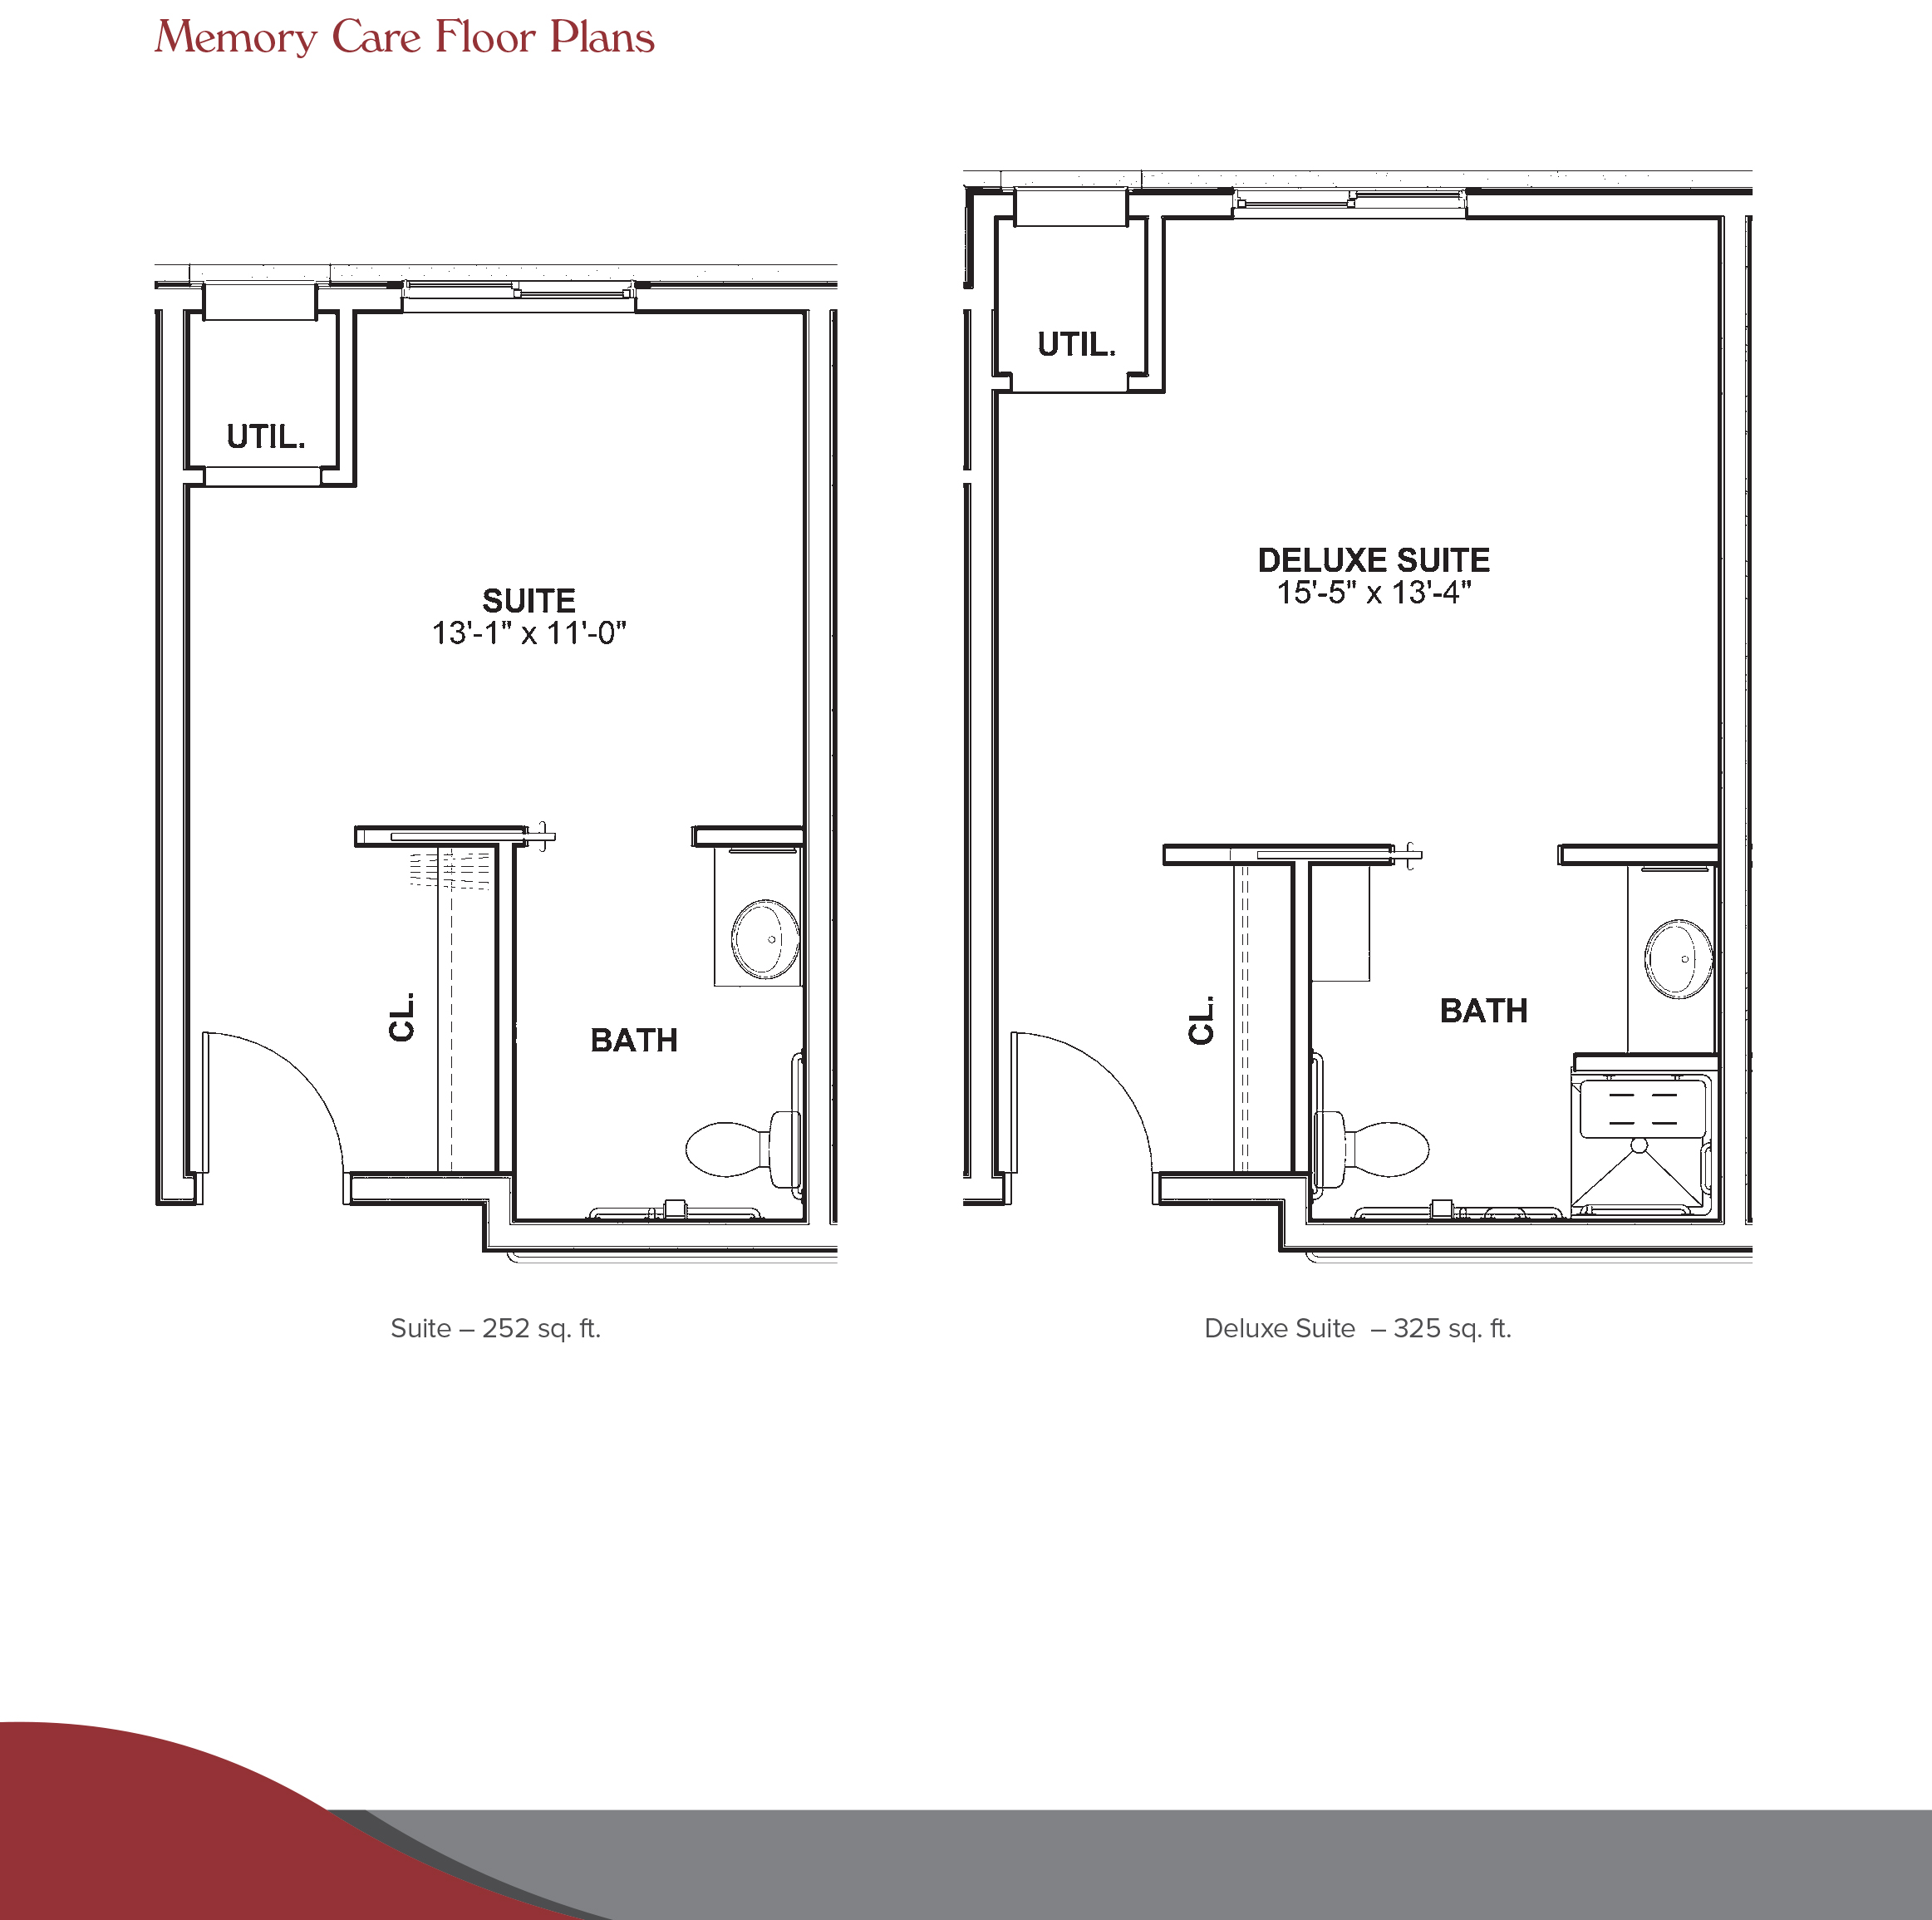 memory care floor plan